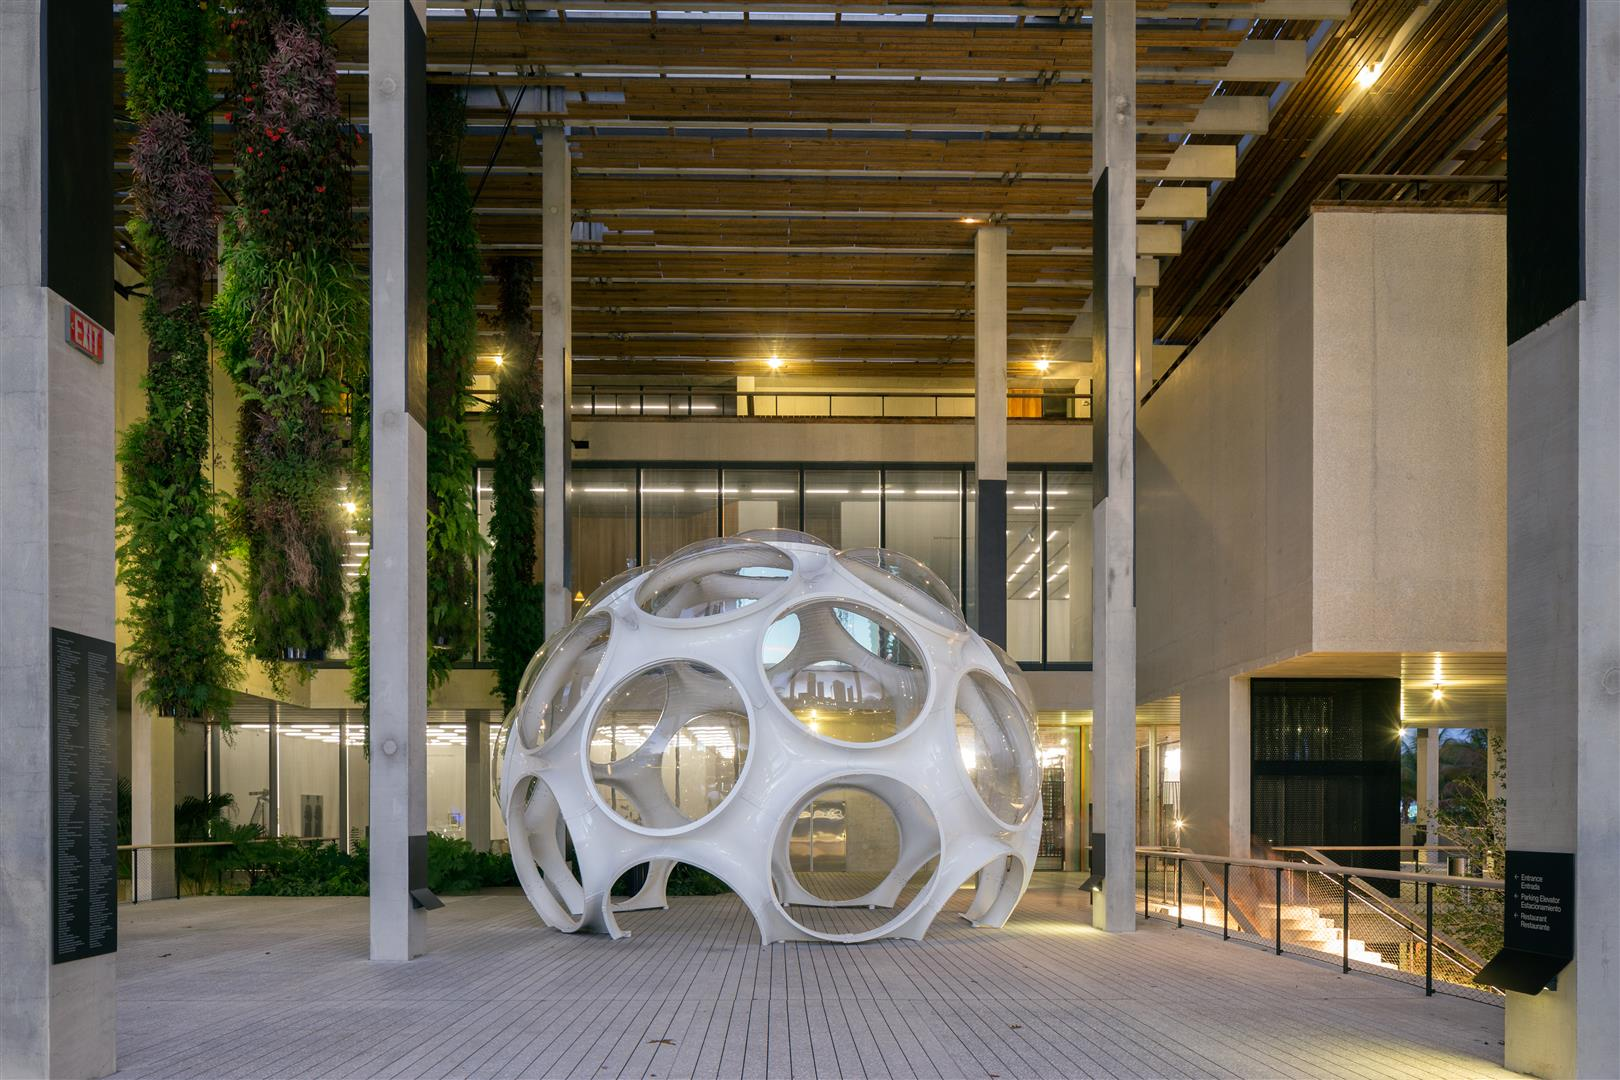 Fly's Dome at the Perez Art Museum Miami - 02/2015 - copyright - Christian Klugmann